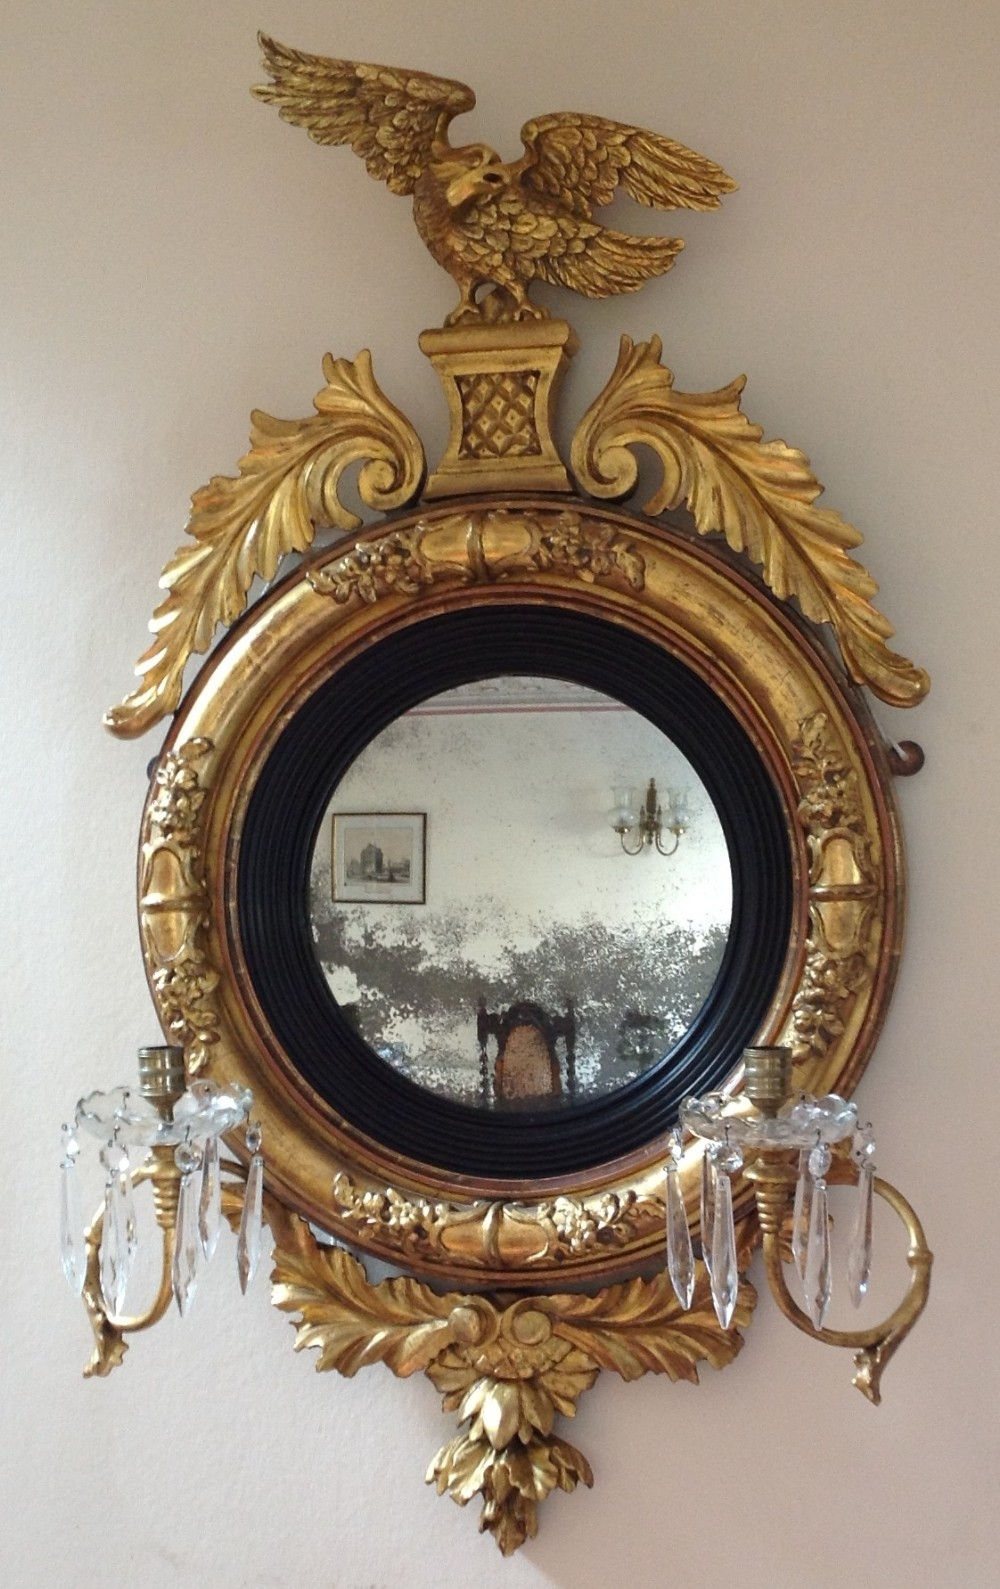 Stunning Regency Convex Mirror 250628 Sellingantiquescouk Pertaining To Antique Convex Mirrors For Sale (View 3 of 15)